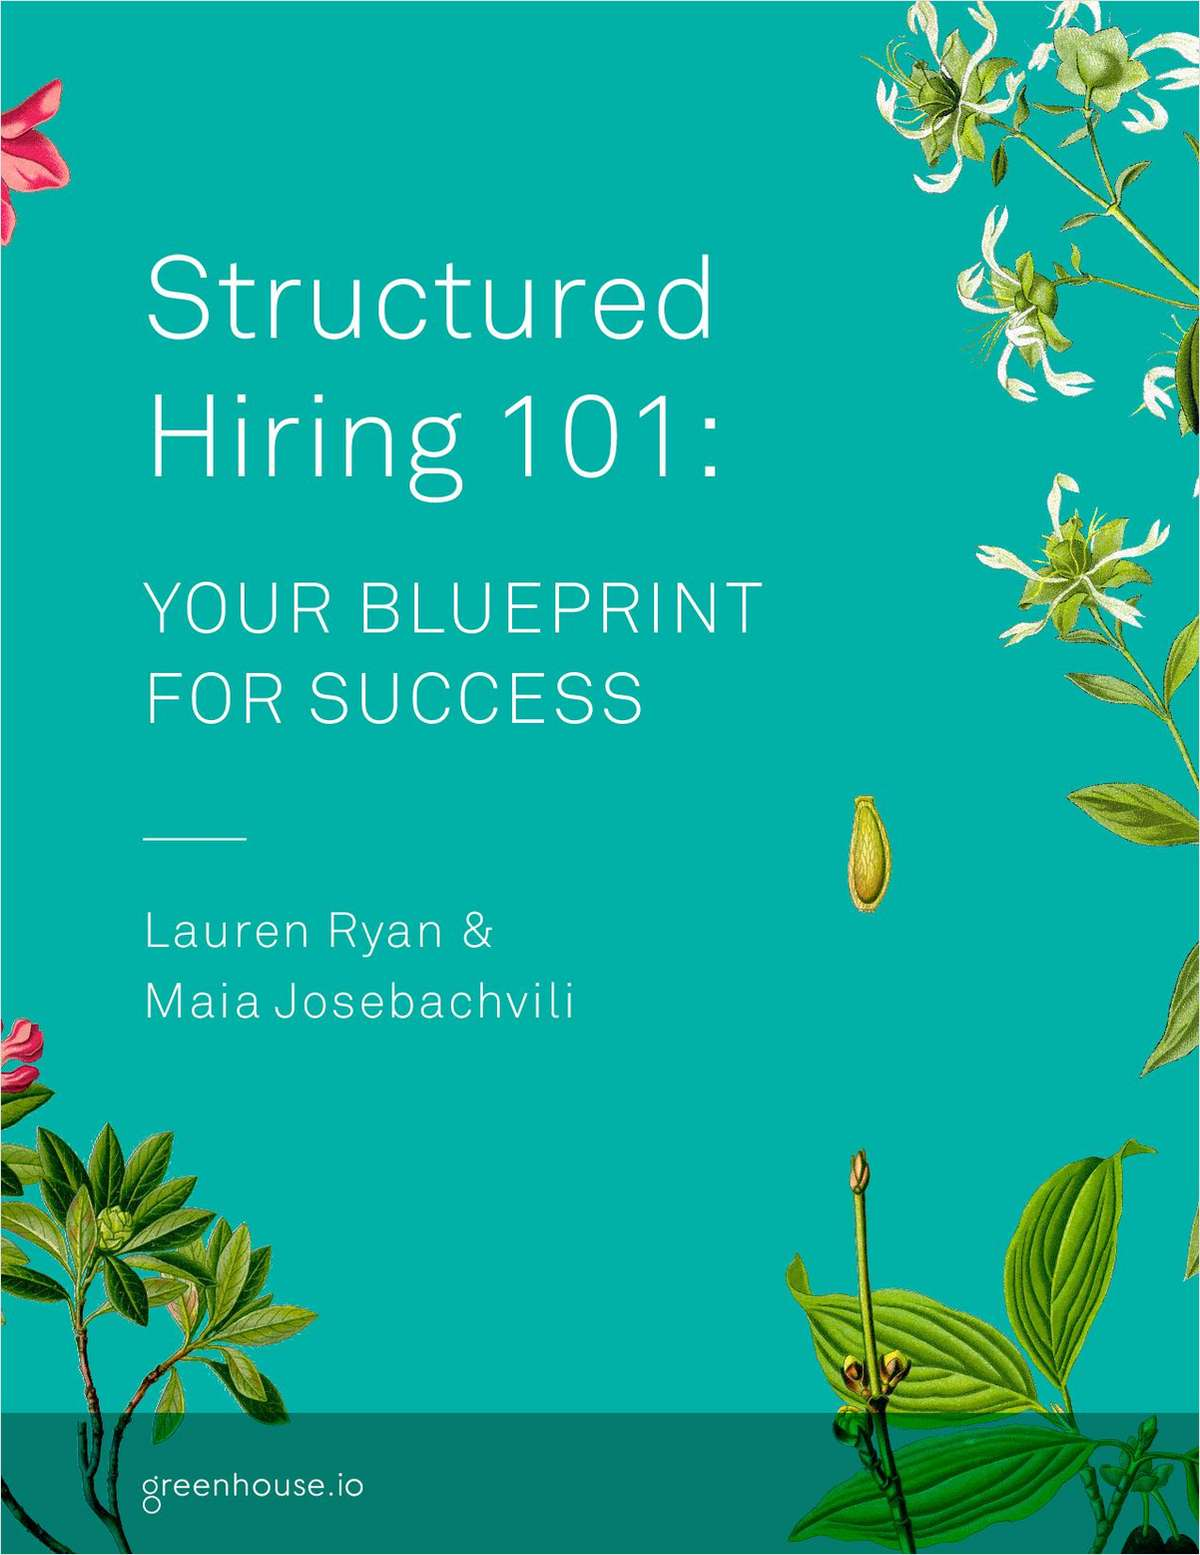 Structured hiring 101 your blueprint for success free greenhouse structured hiring 101 your blueprint for success malvernweather Images